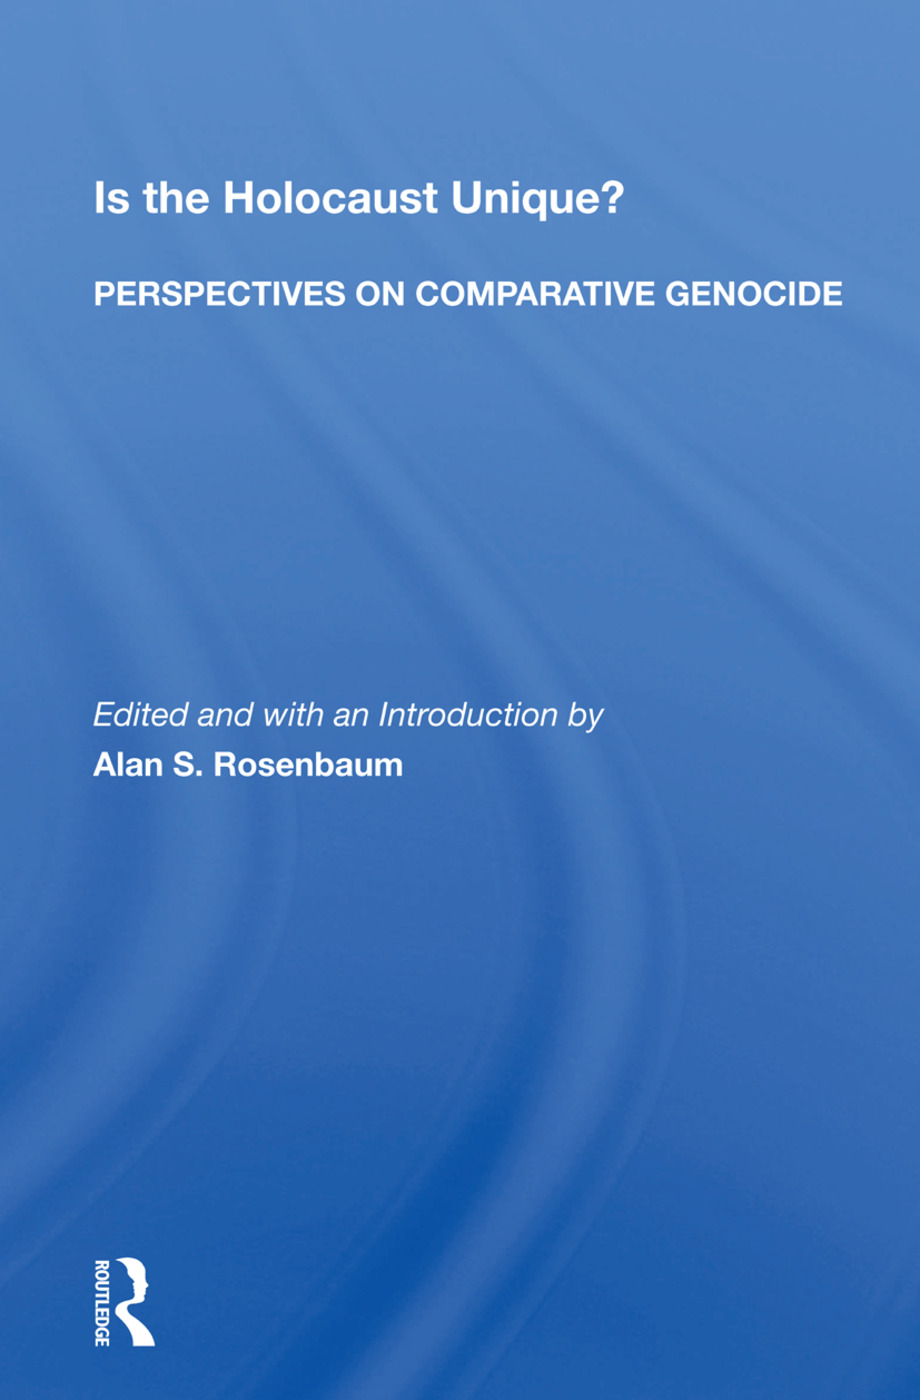 The Rise and Fall of Metaphor: German Historians and the Uniqueness of the Holocaust